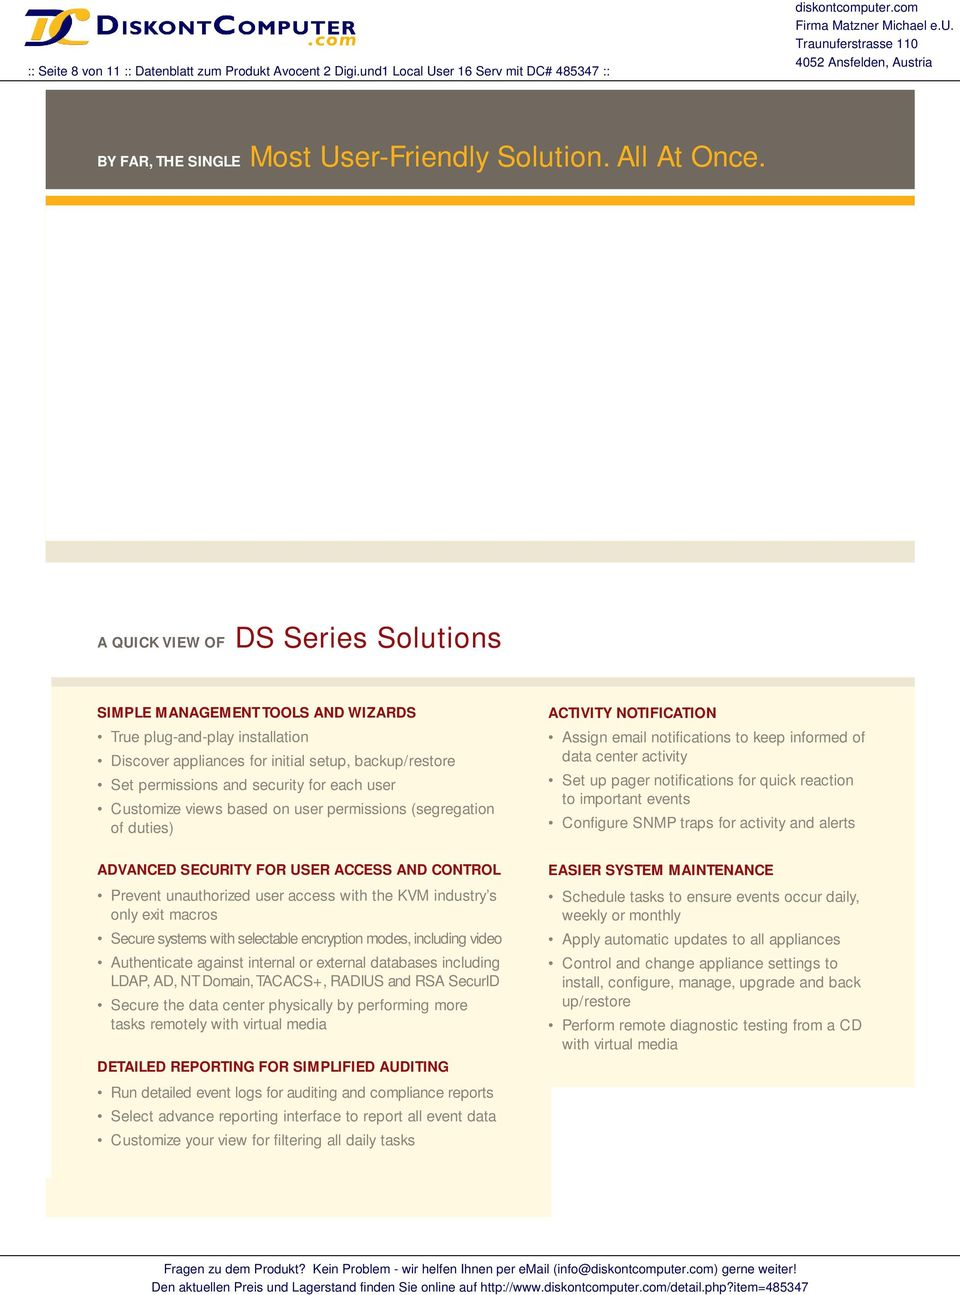 A QUICK VIEW OF DS Series Solutions SIMPLE MANAGEMENT TOOLS AND WIZARDS True plug-and-play installation Discover appliances for initial setup, backup/restore Set permissions and security for each